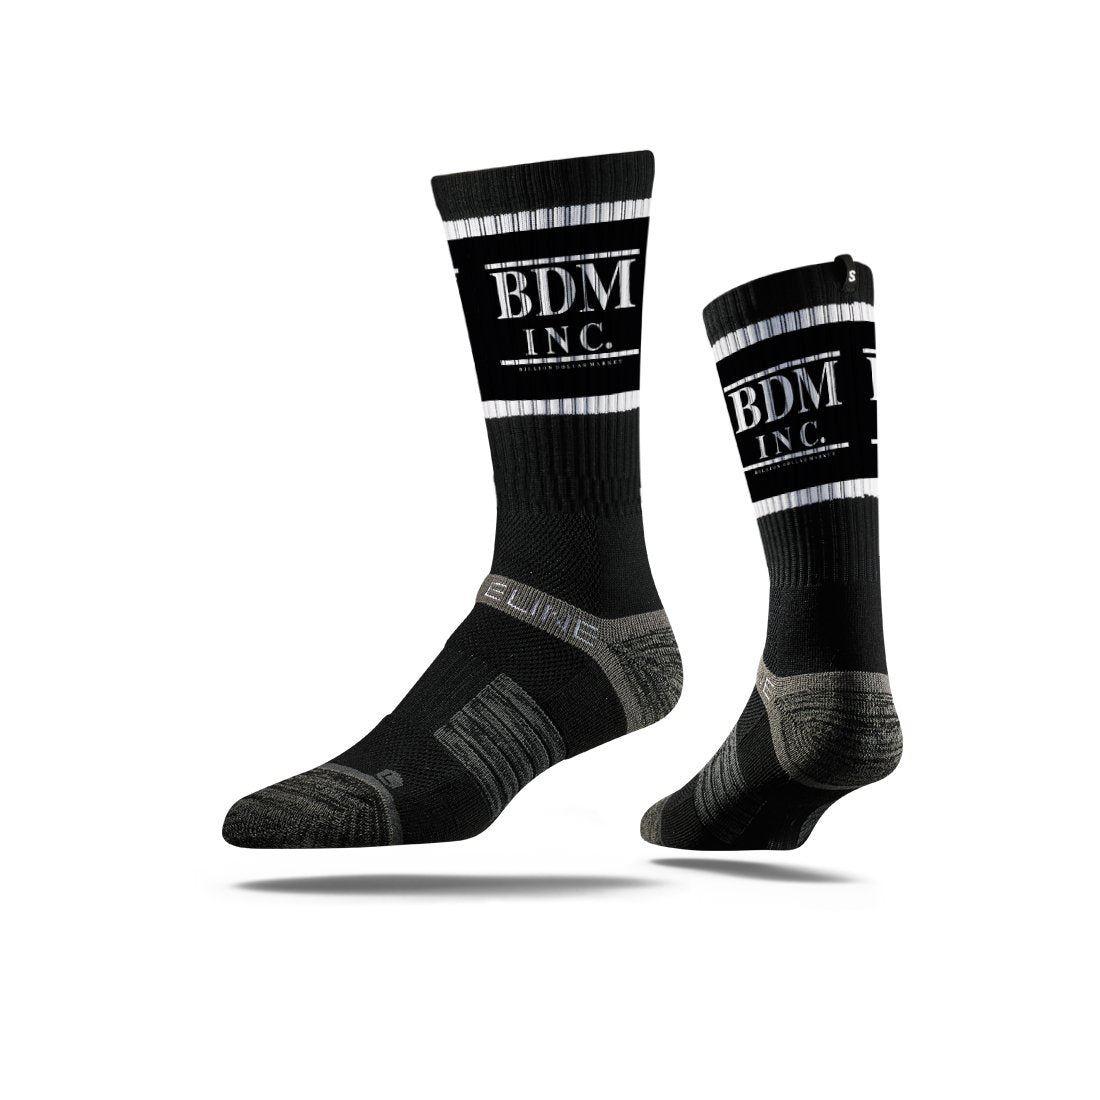 BDM INC Black/White